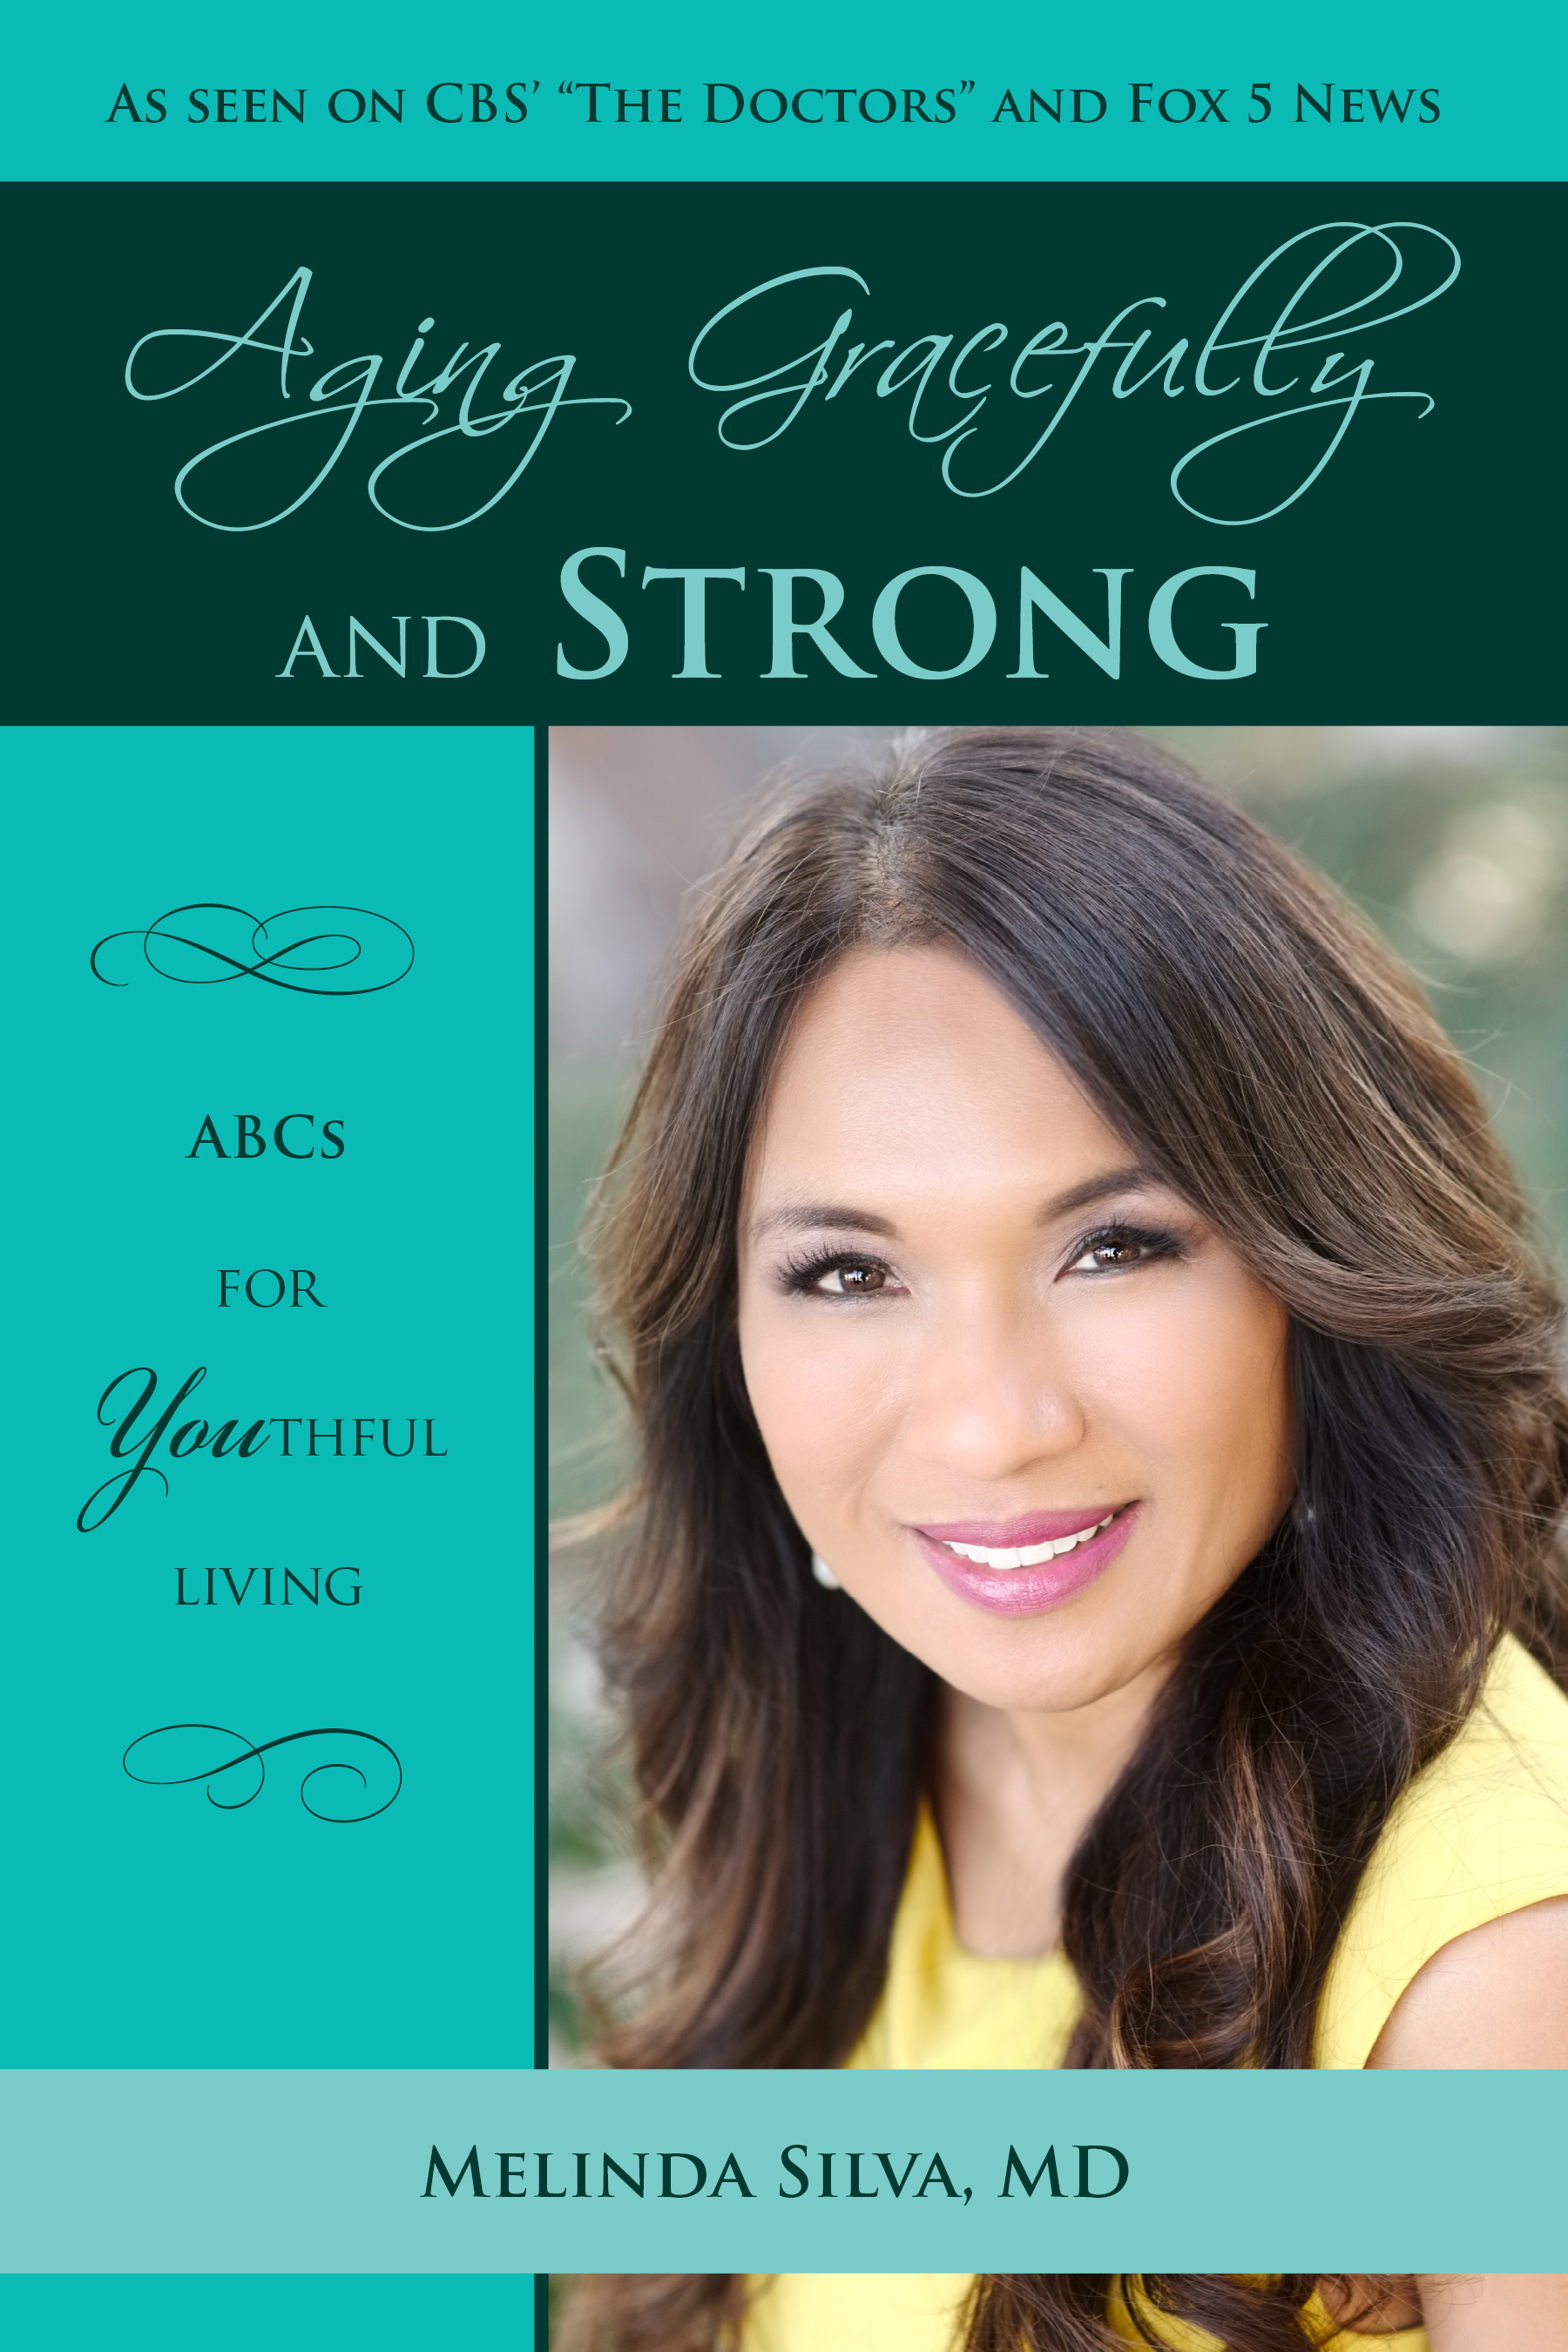 Copy of Melinda Silva, MD, Aging Gracefully and Strong